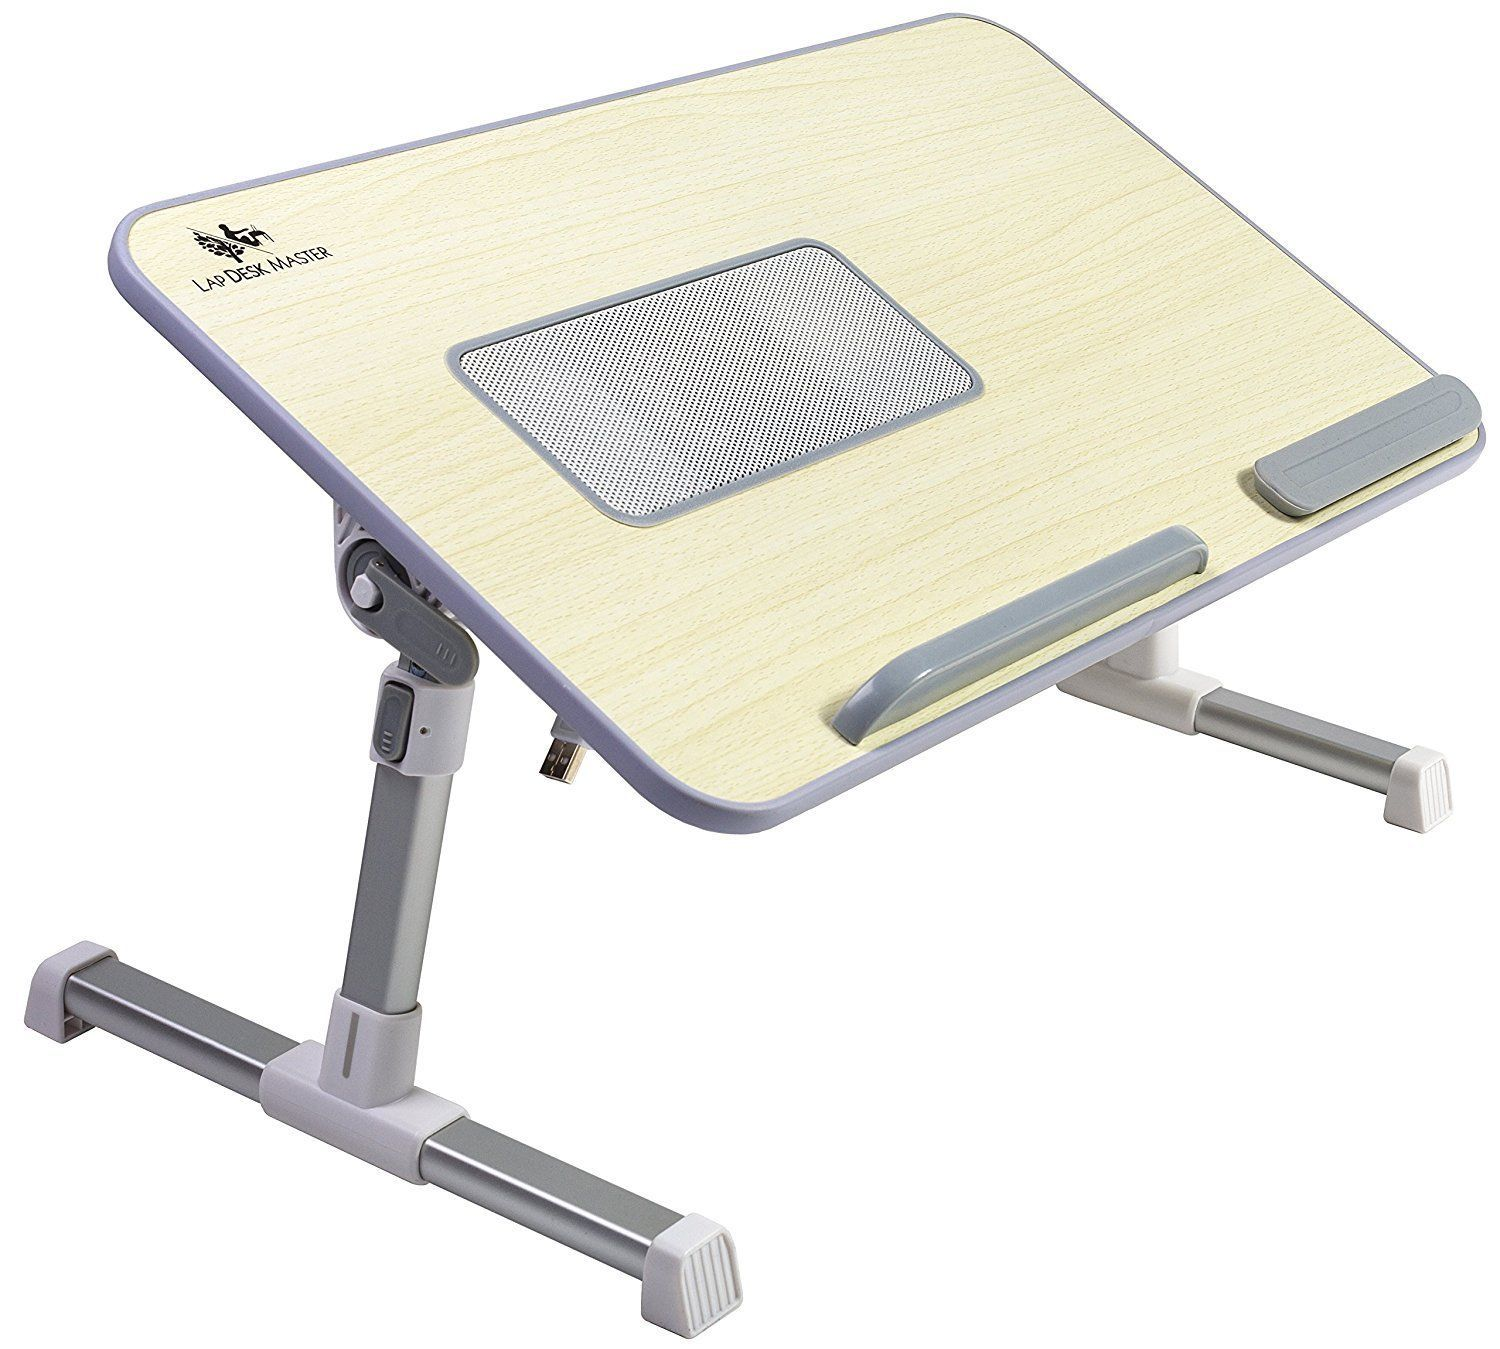 Lap Desk Master Adjustable Laptop Bed Tray Table With Cooling Fan Portable  Desk